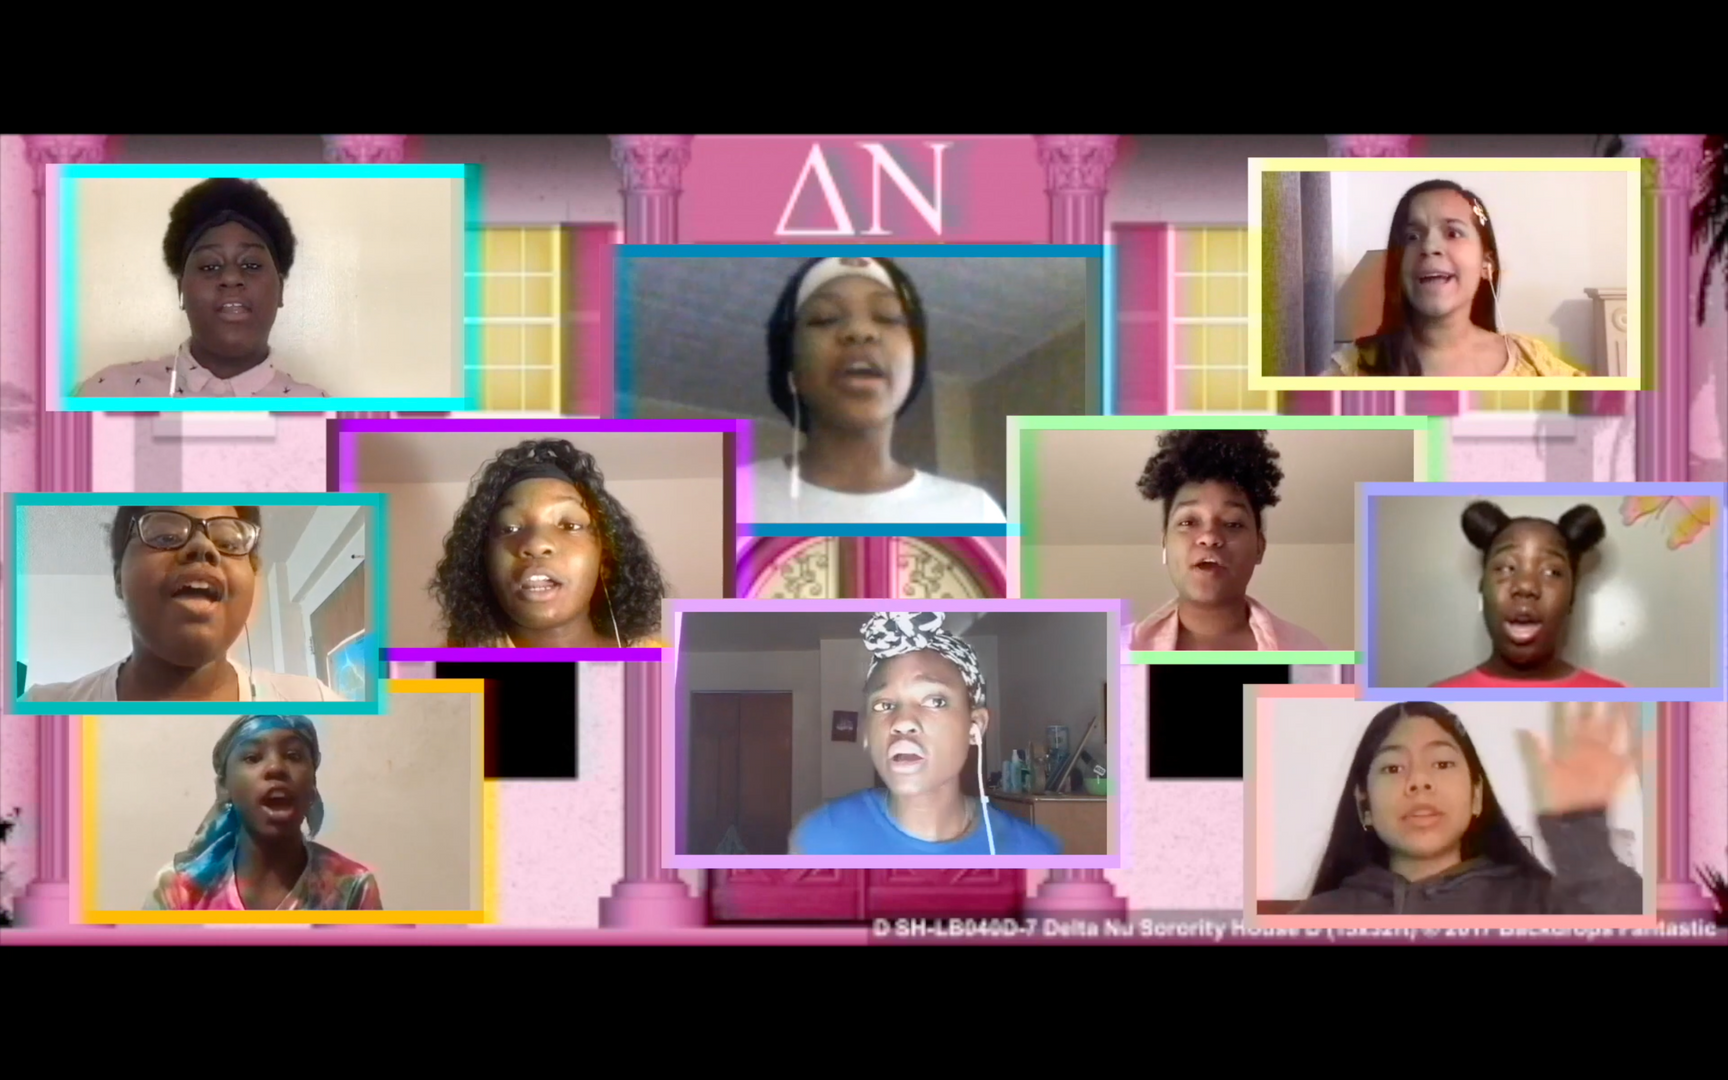 Students in virtual screen boxes in a sorority house